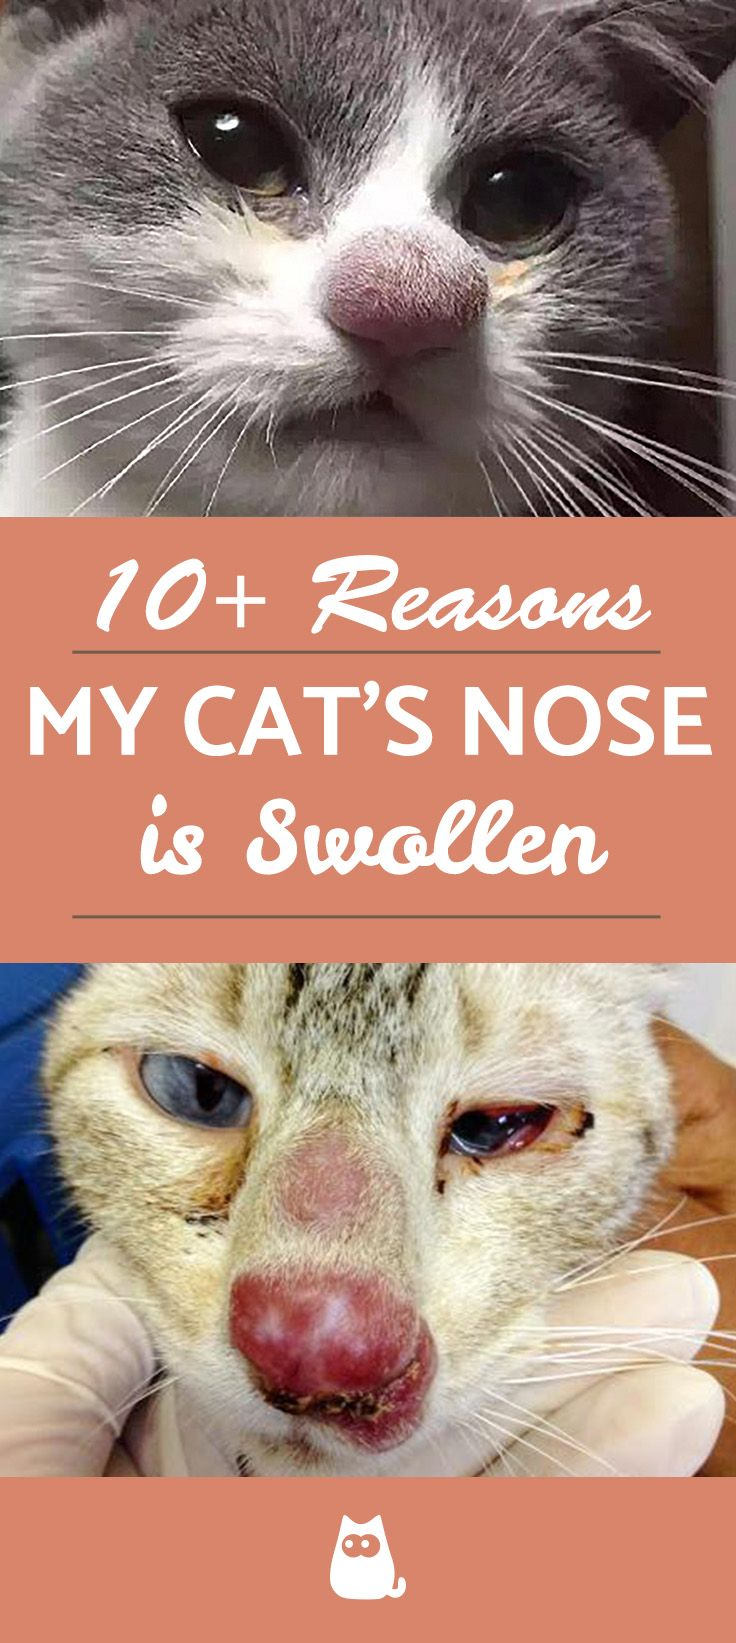 My Cat Has A Swollen Nose Causes And Treatments In 2020 Cat Nose Cats Nose